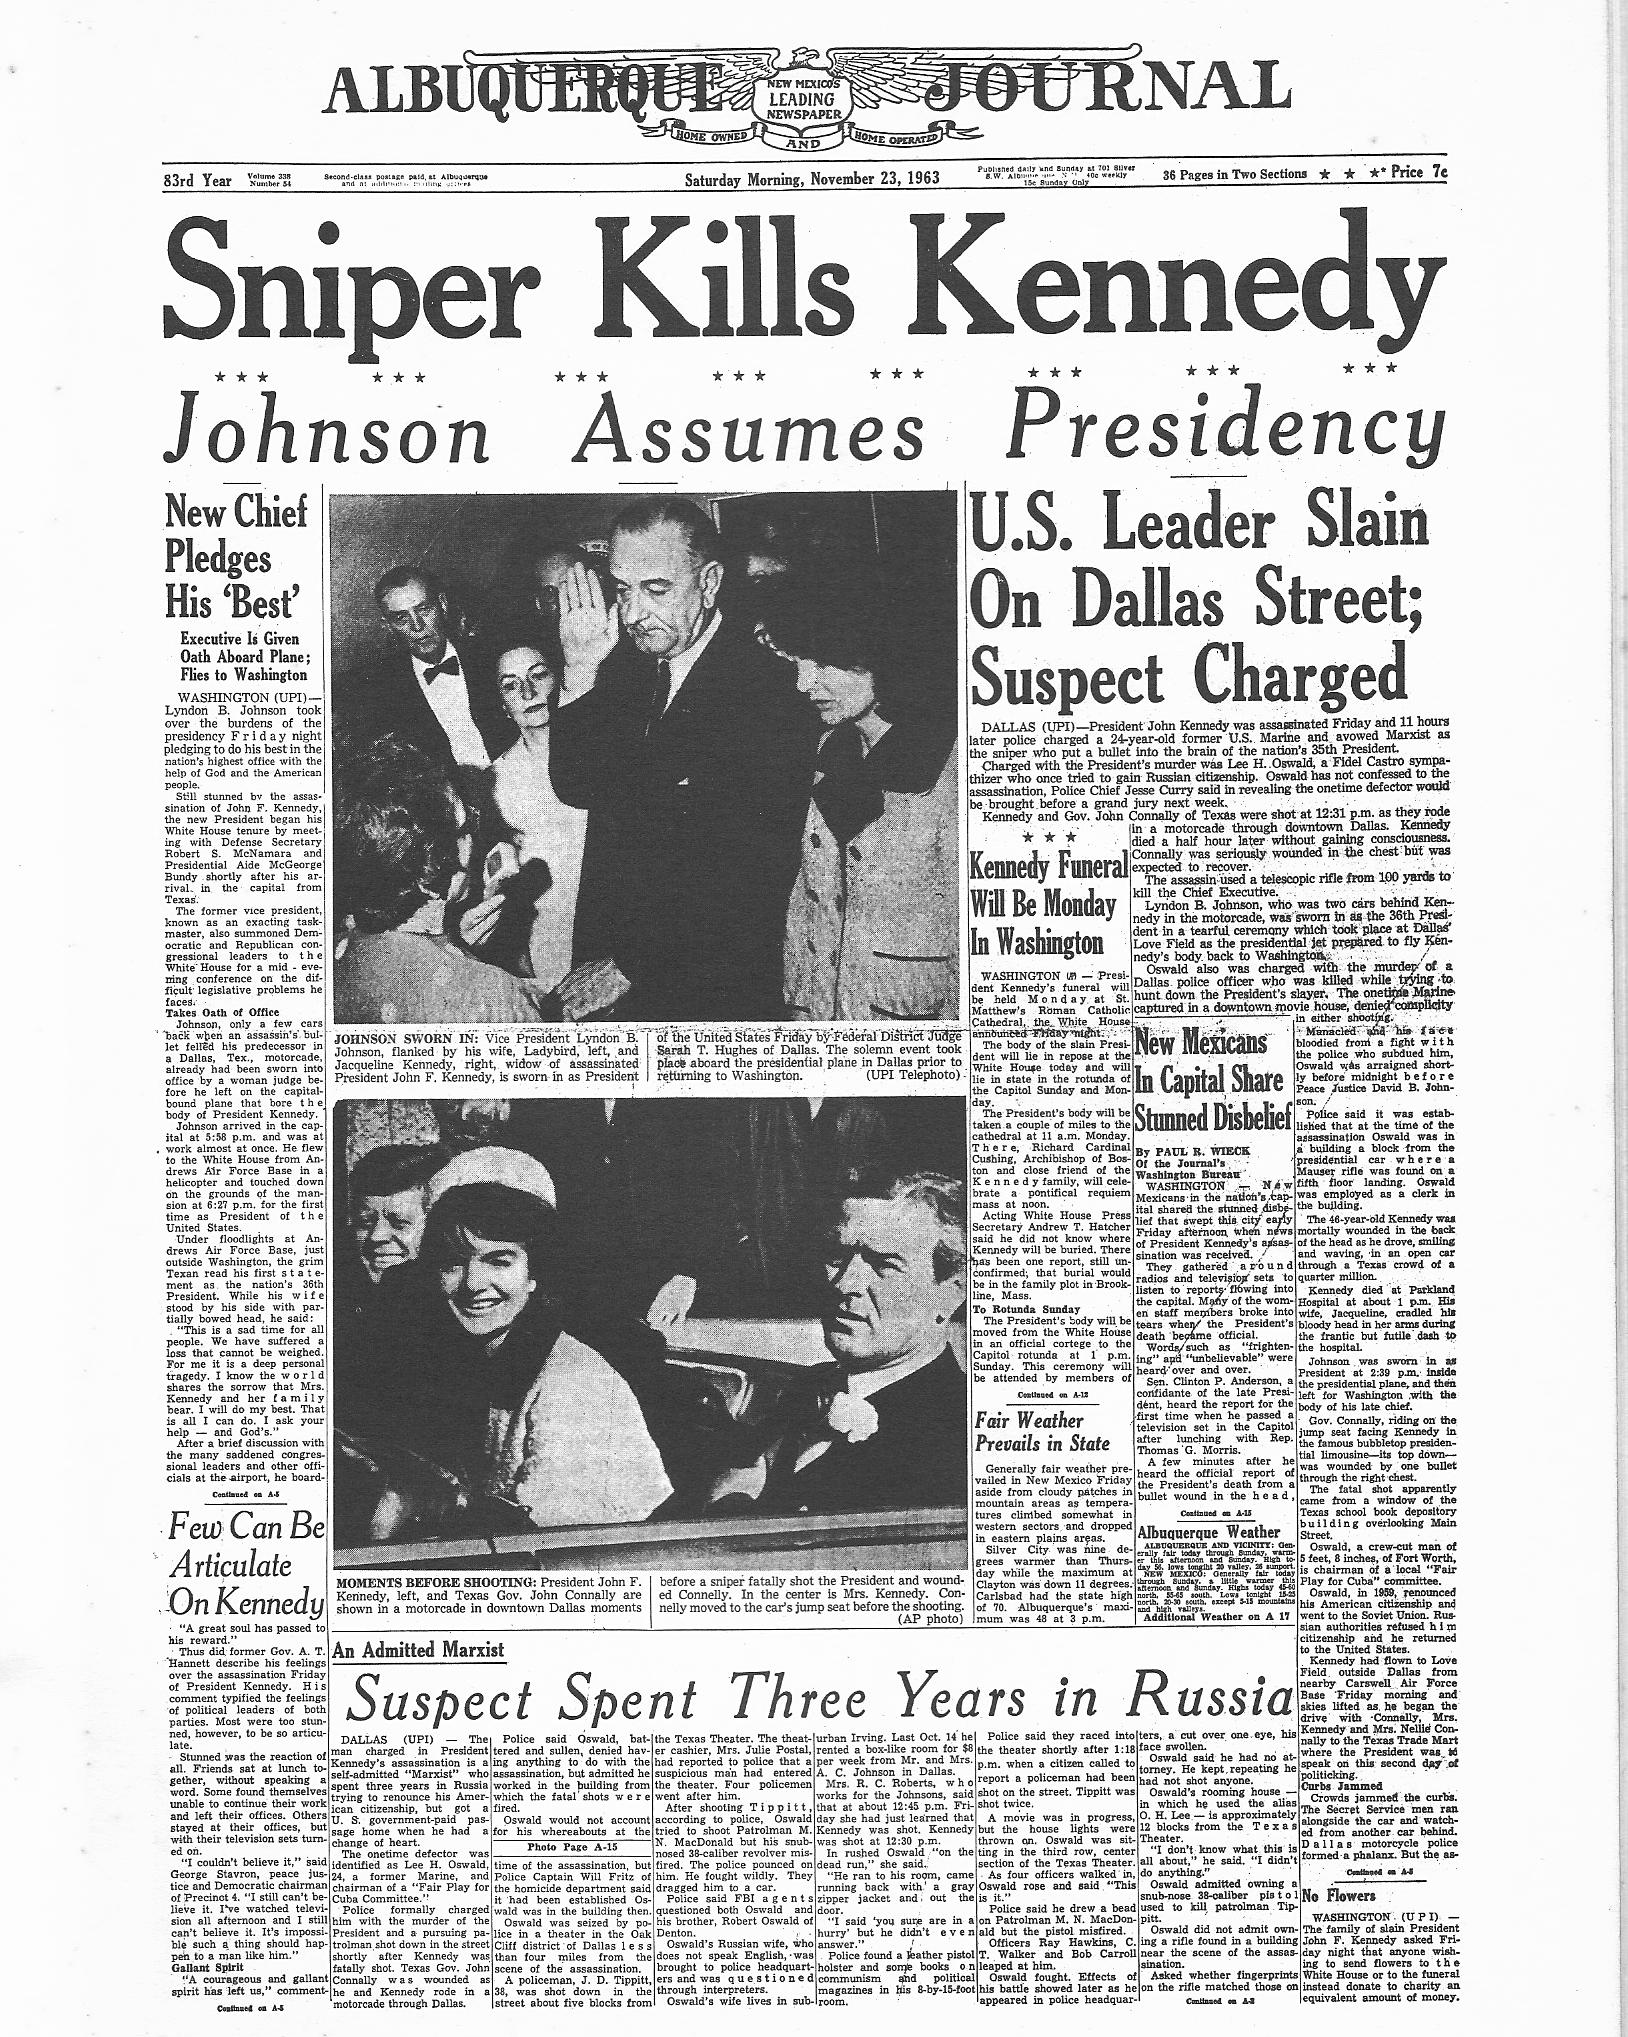 UPI Newspaper Fronts from Day and Days Following JFK's ...